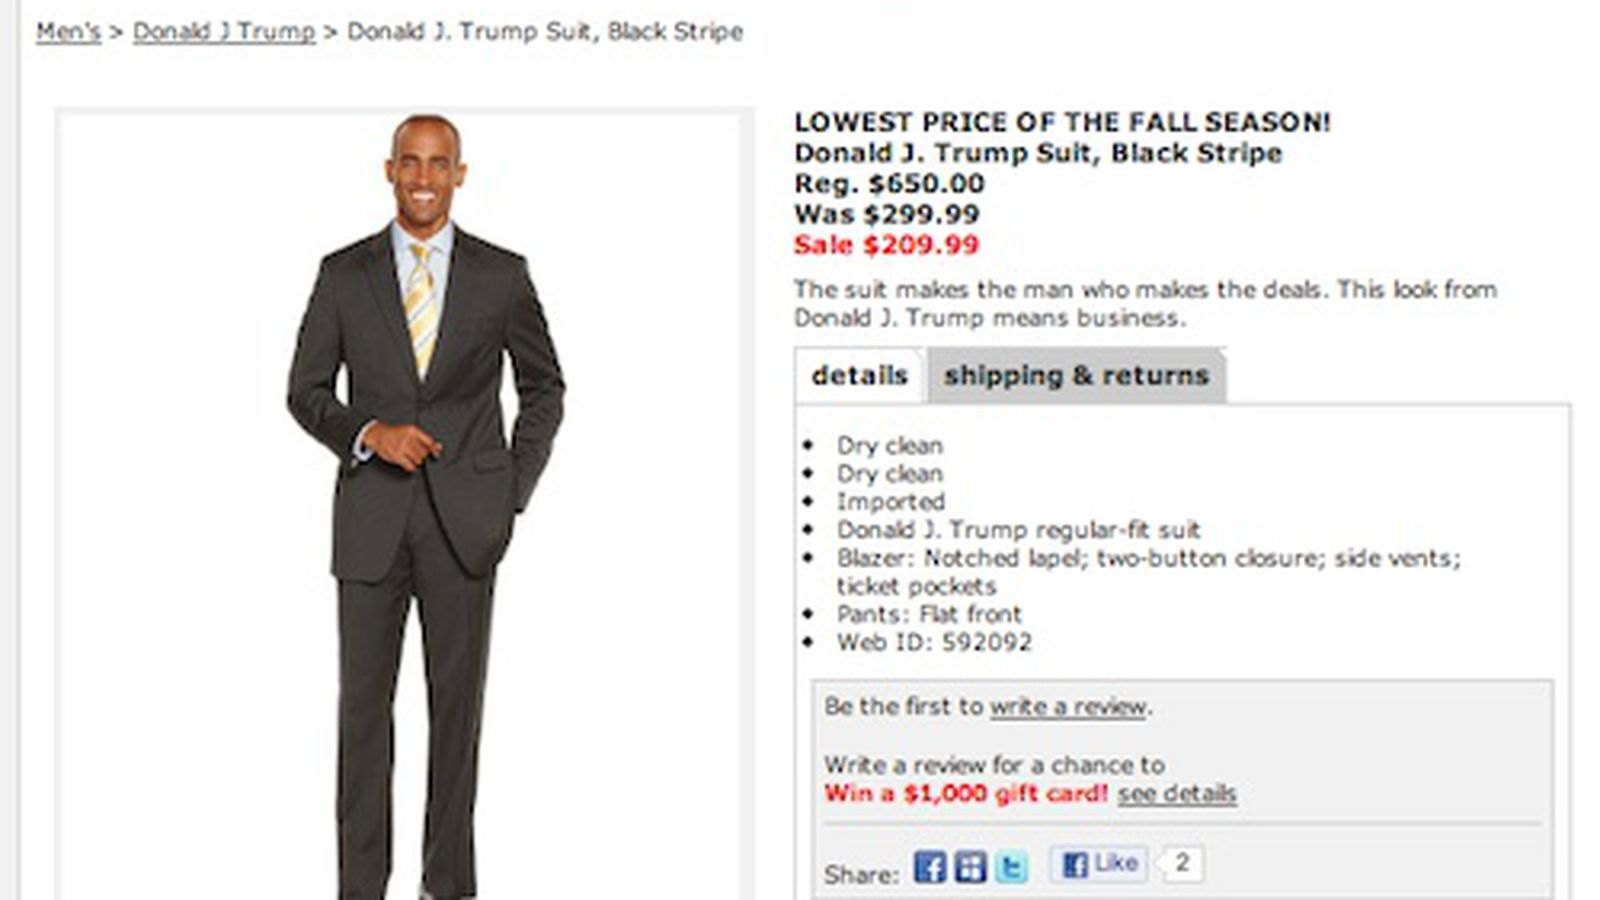 Donald Trump Suits Debut at Macy\'s, Already Marked Down 70% - Racked